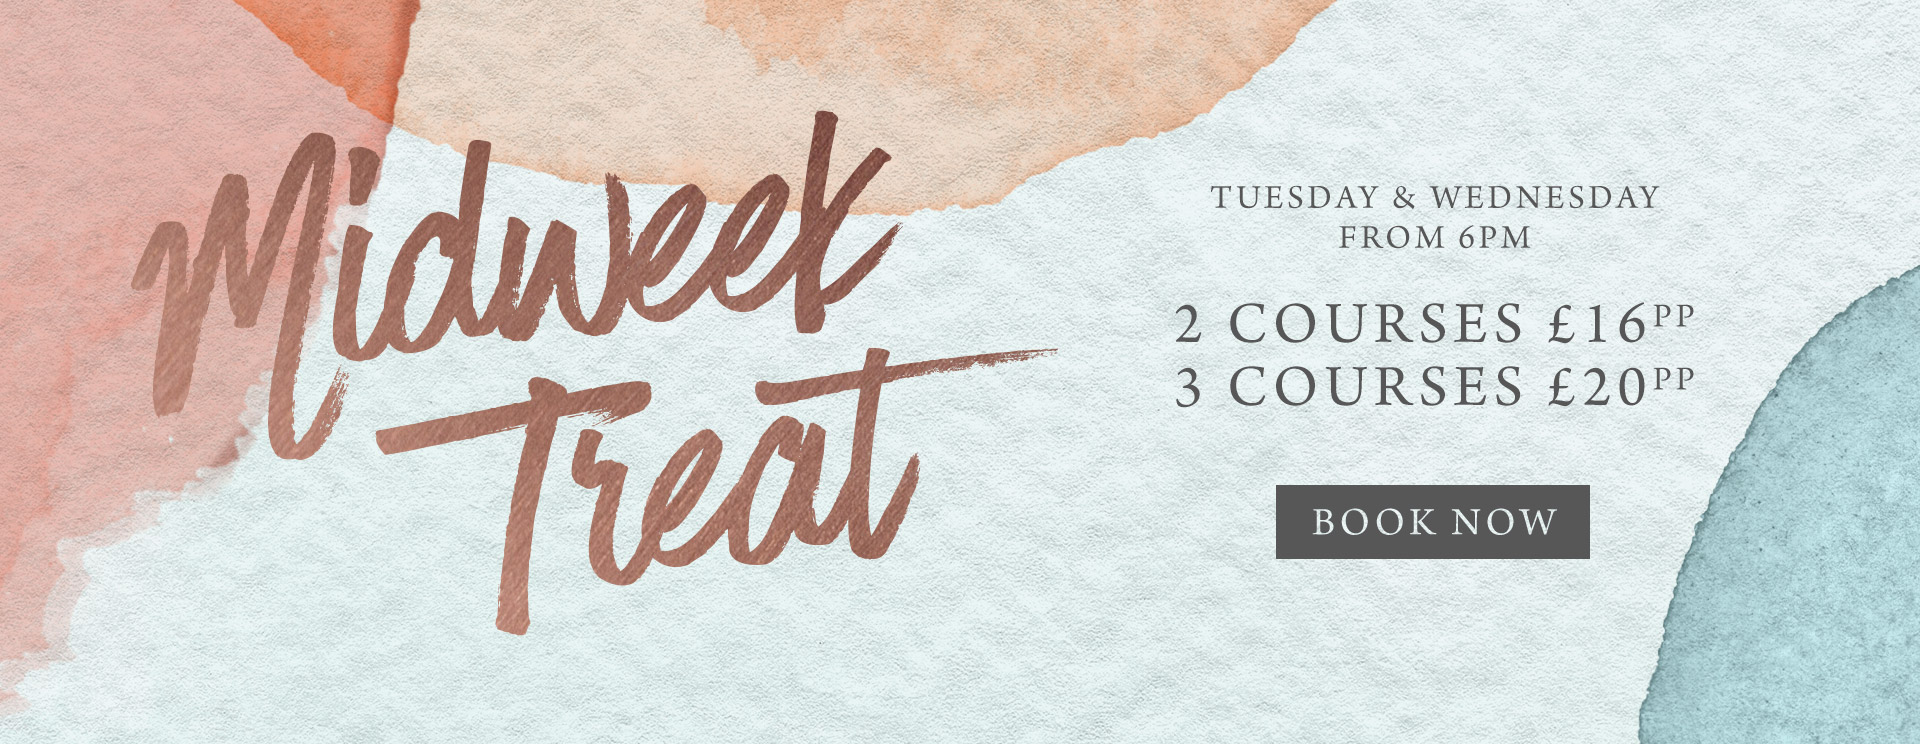 Midweek treat at The Cock Inn - Book now